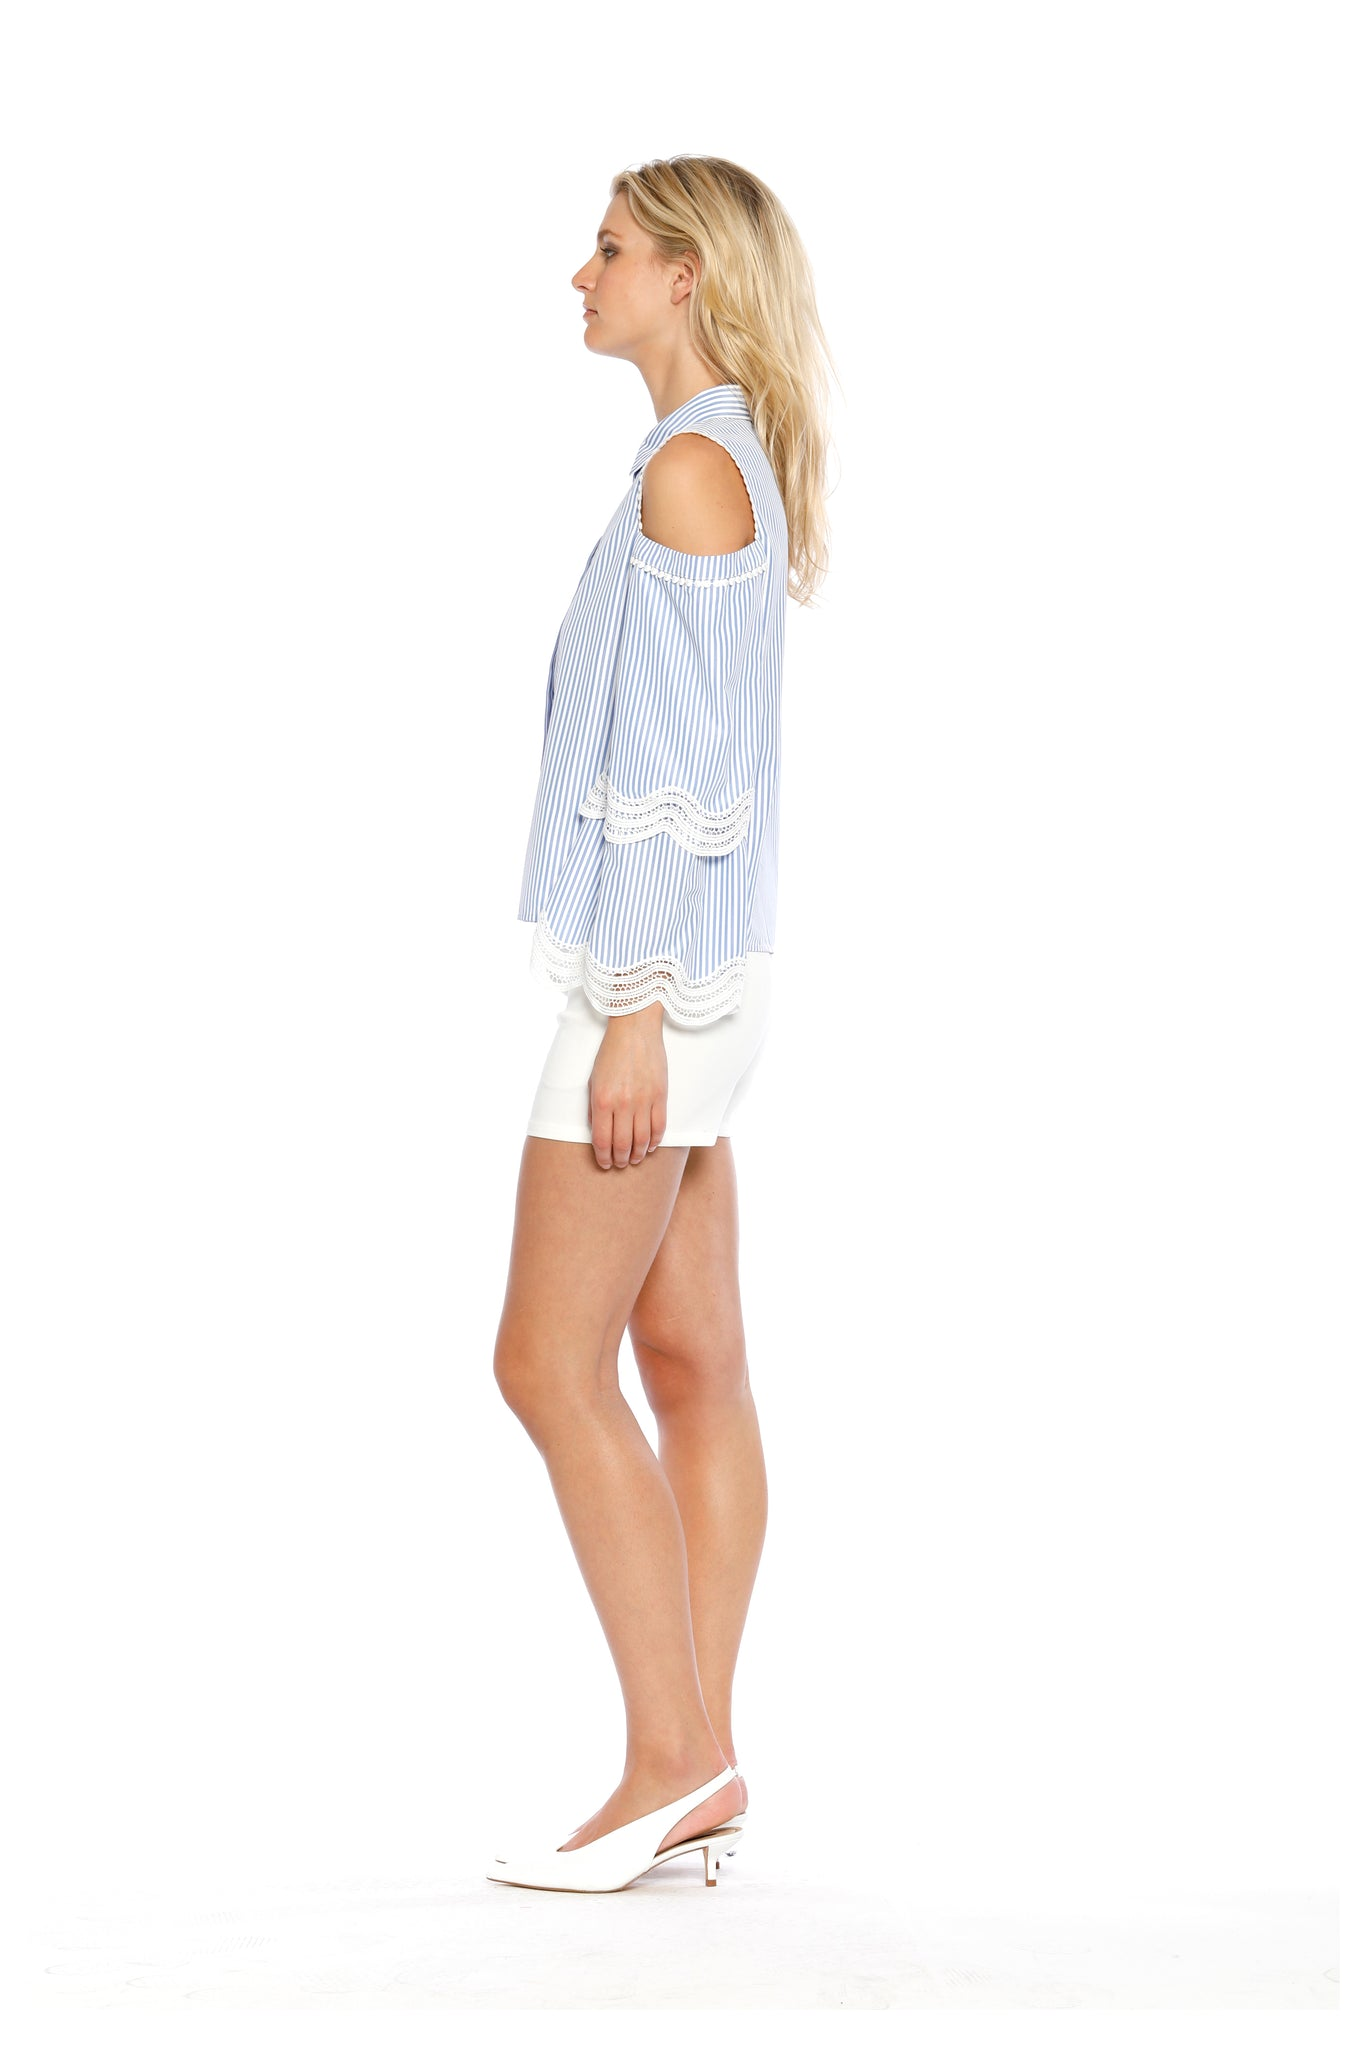 Side view of Darlene Top, long-sleeved, blue-striped Oxford Top with cold shoulder cutouts and white lace design at the elbows. 60% Supertone and 40% Cotton - and machine-washable.